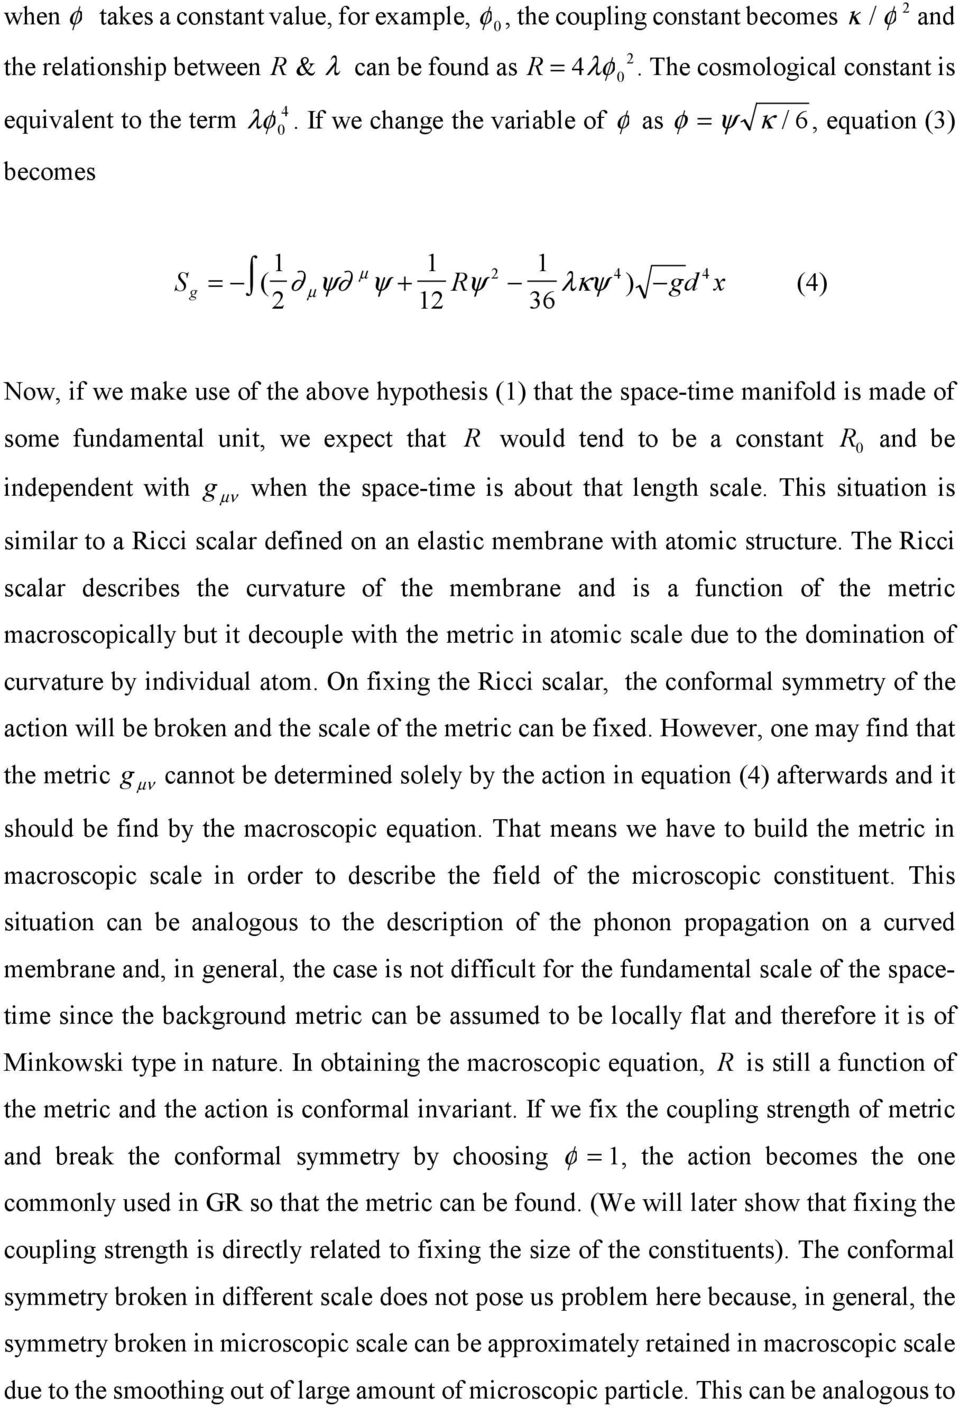 If we change the variable of φ as φ = ψ κ / 6, equation (3) becomes Sg = ( ψ ψ + Rψ λκψ ) gd x 36 () Now, if we make use of the above hypothesis () that the space-time manifold is made of some